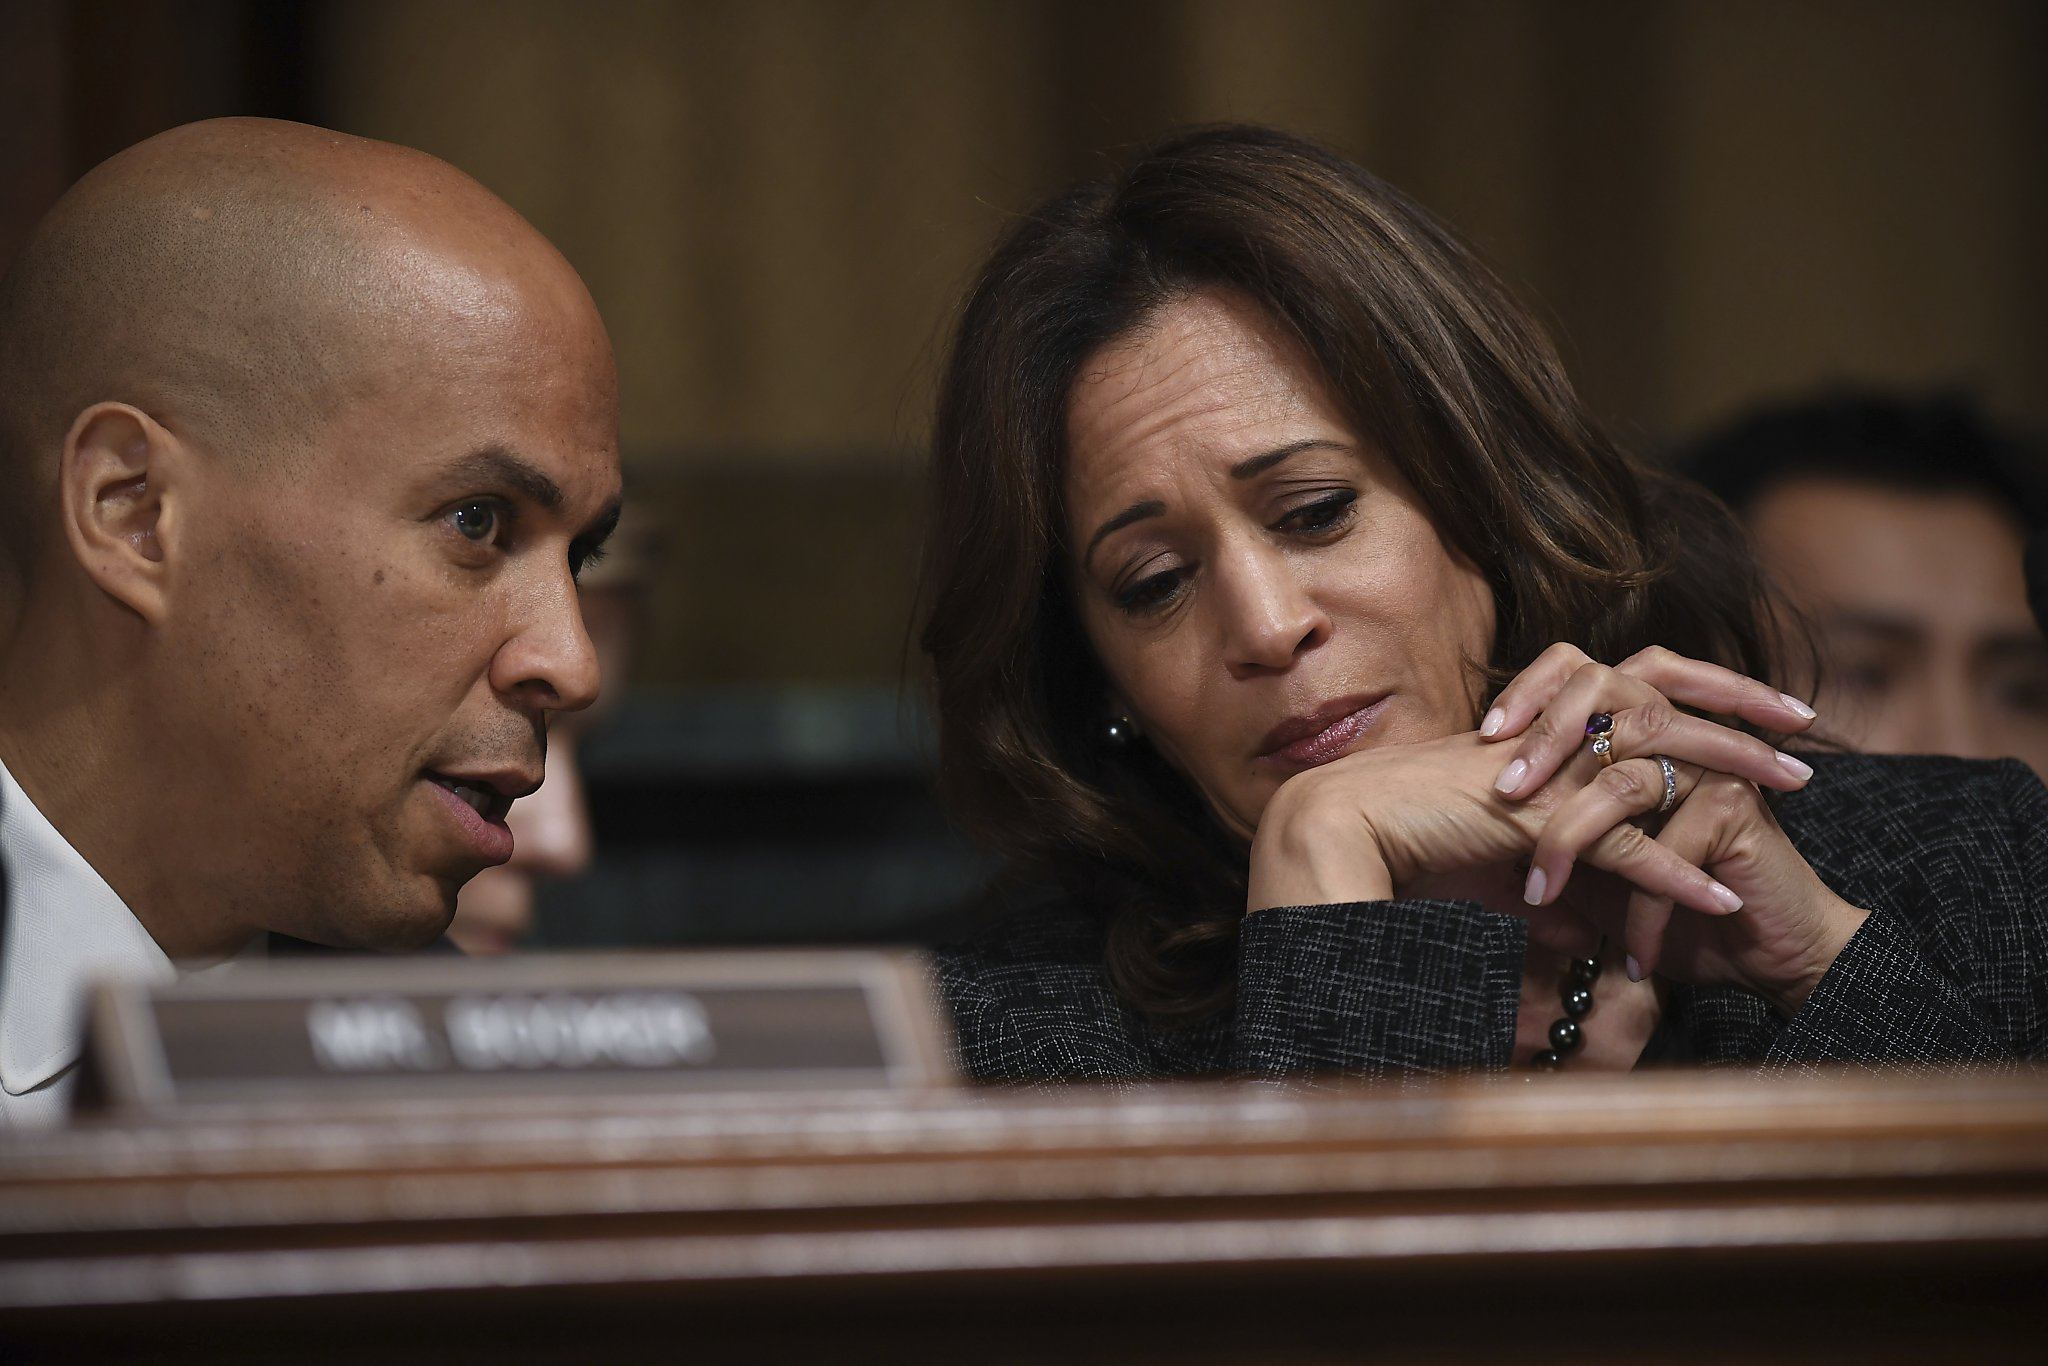 Harris takes advantage of her role in Kavanaugh opposition